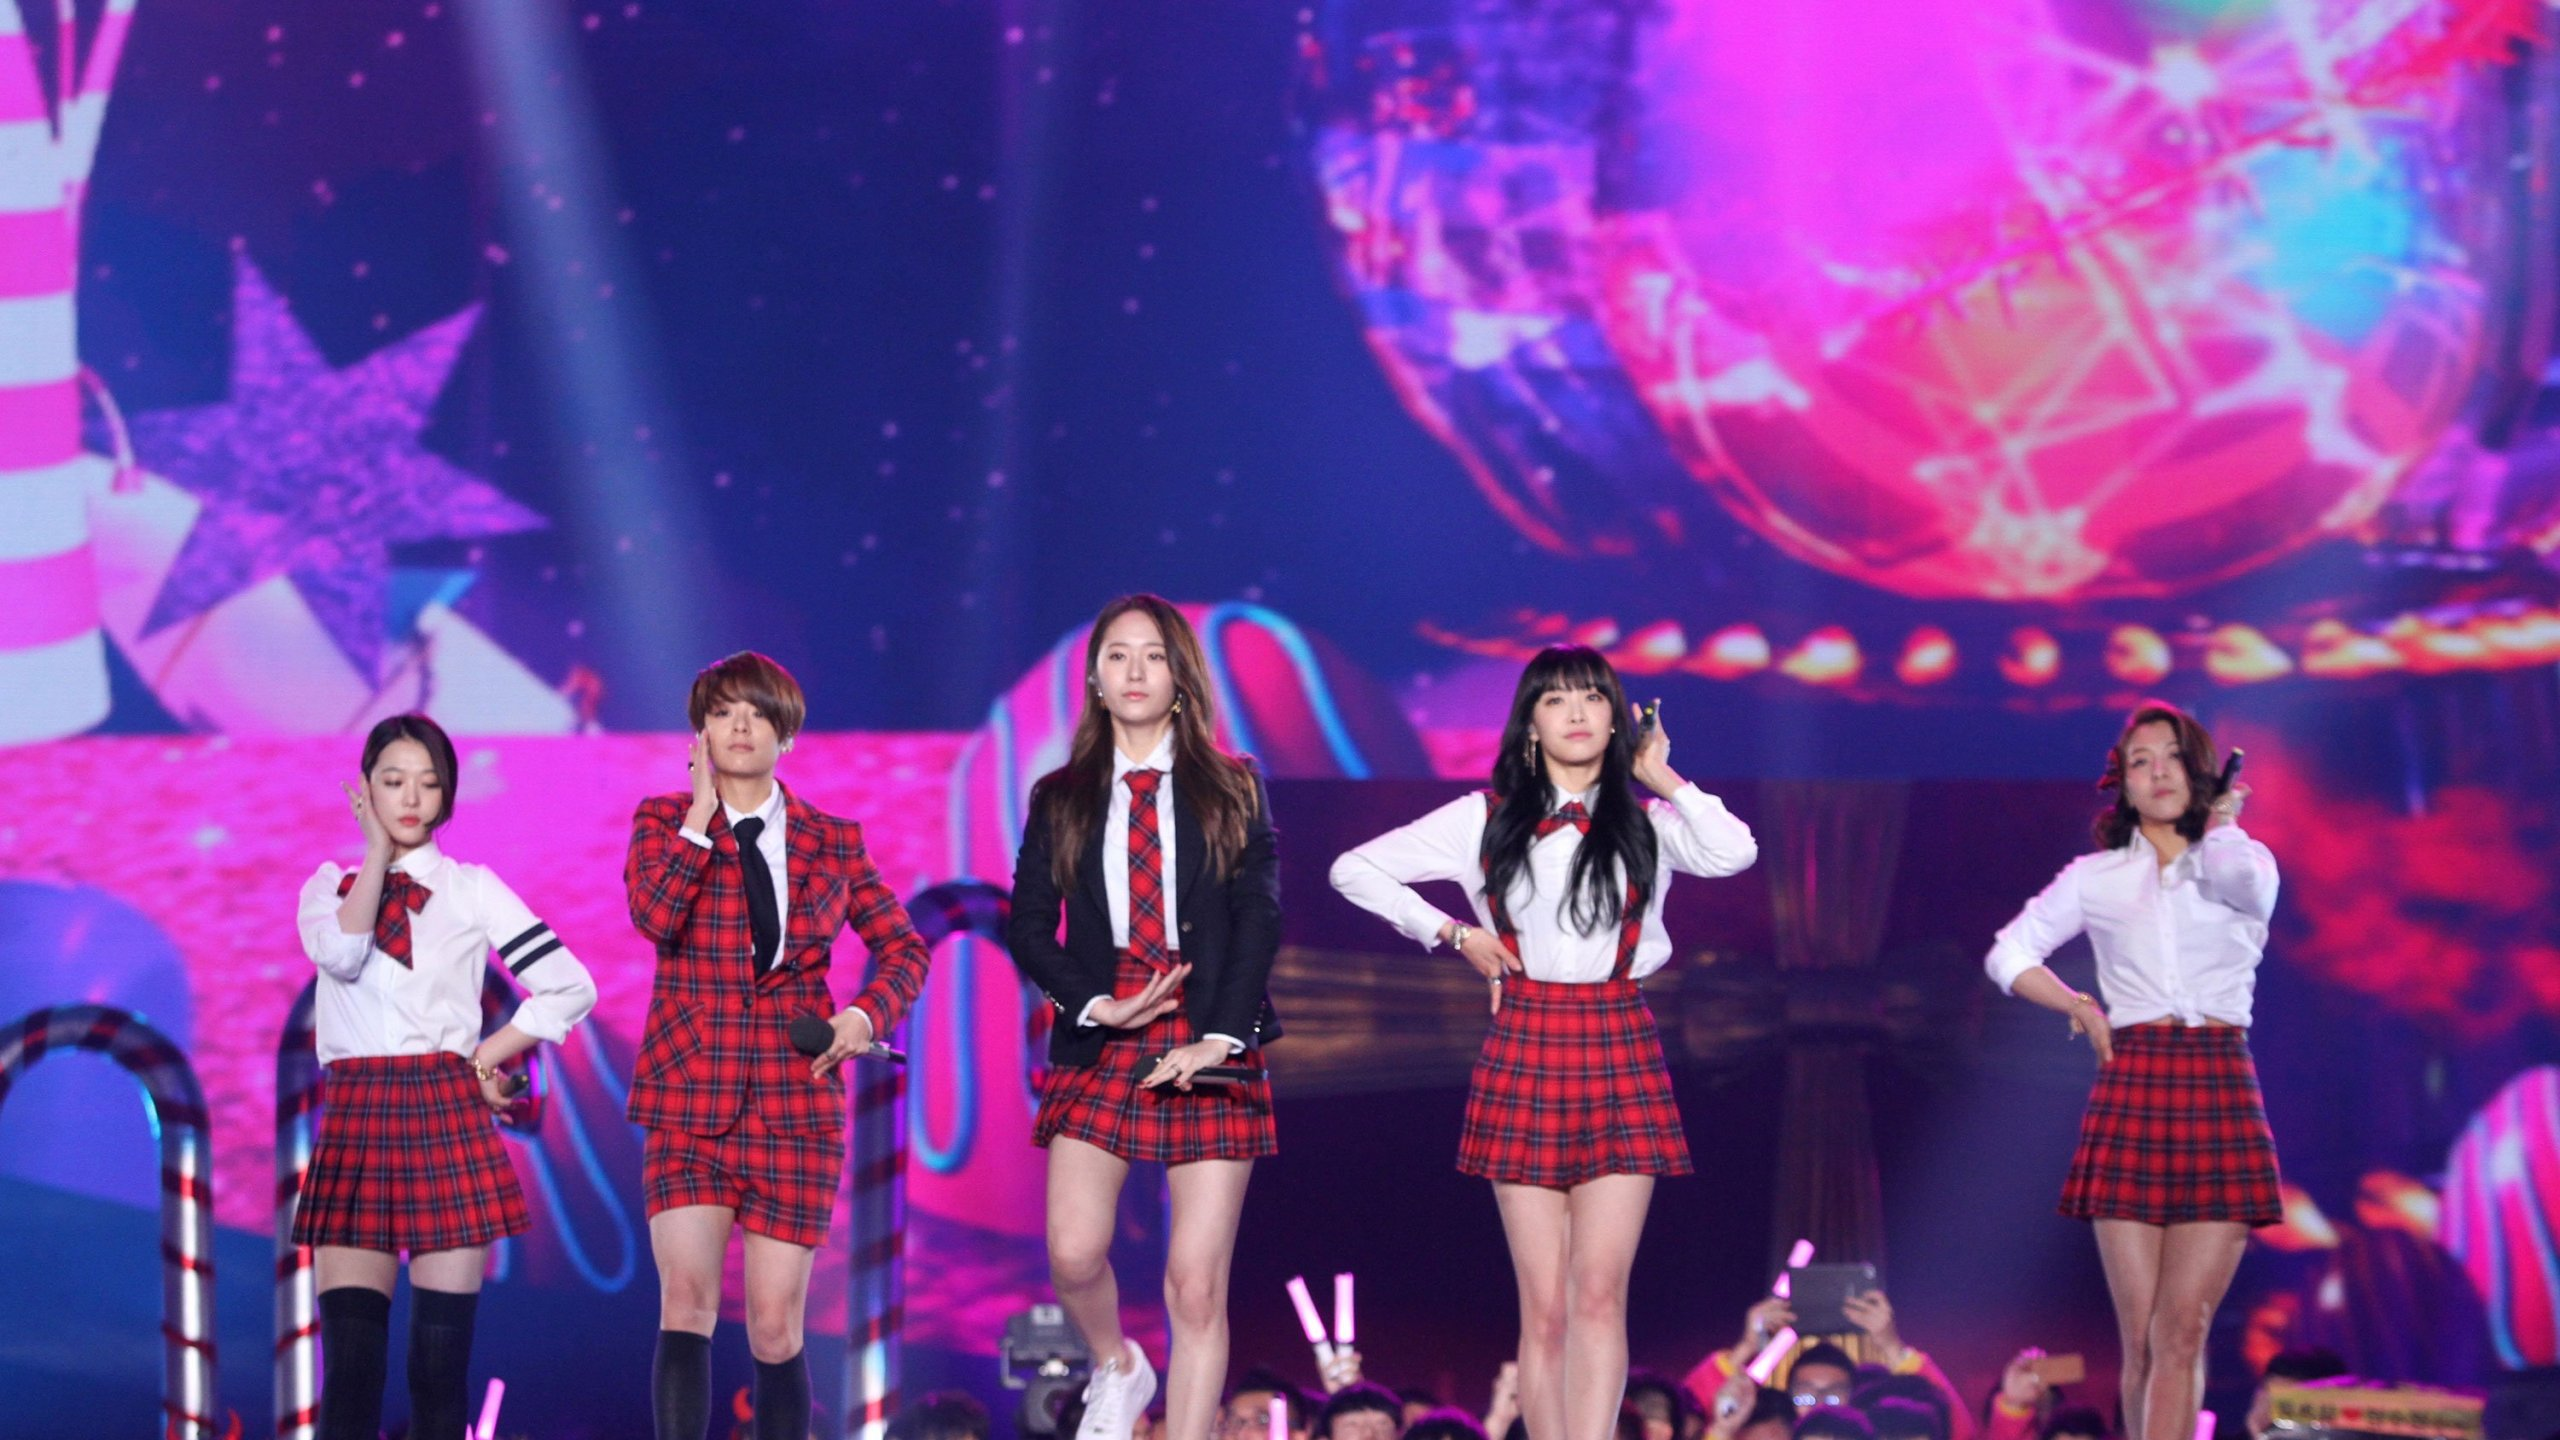 K-pop star Sulli, performs with the band f(x) in this undated photo. (Credit: Visual China Group/Getty Images)